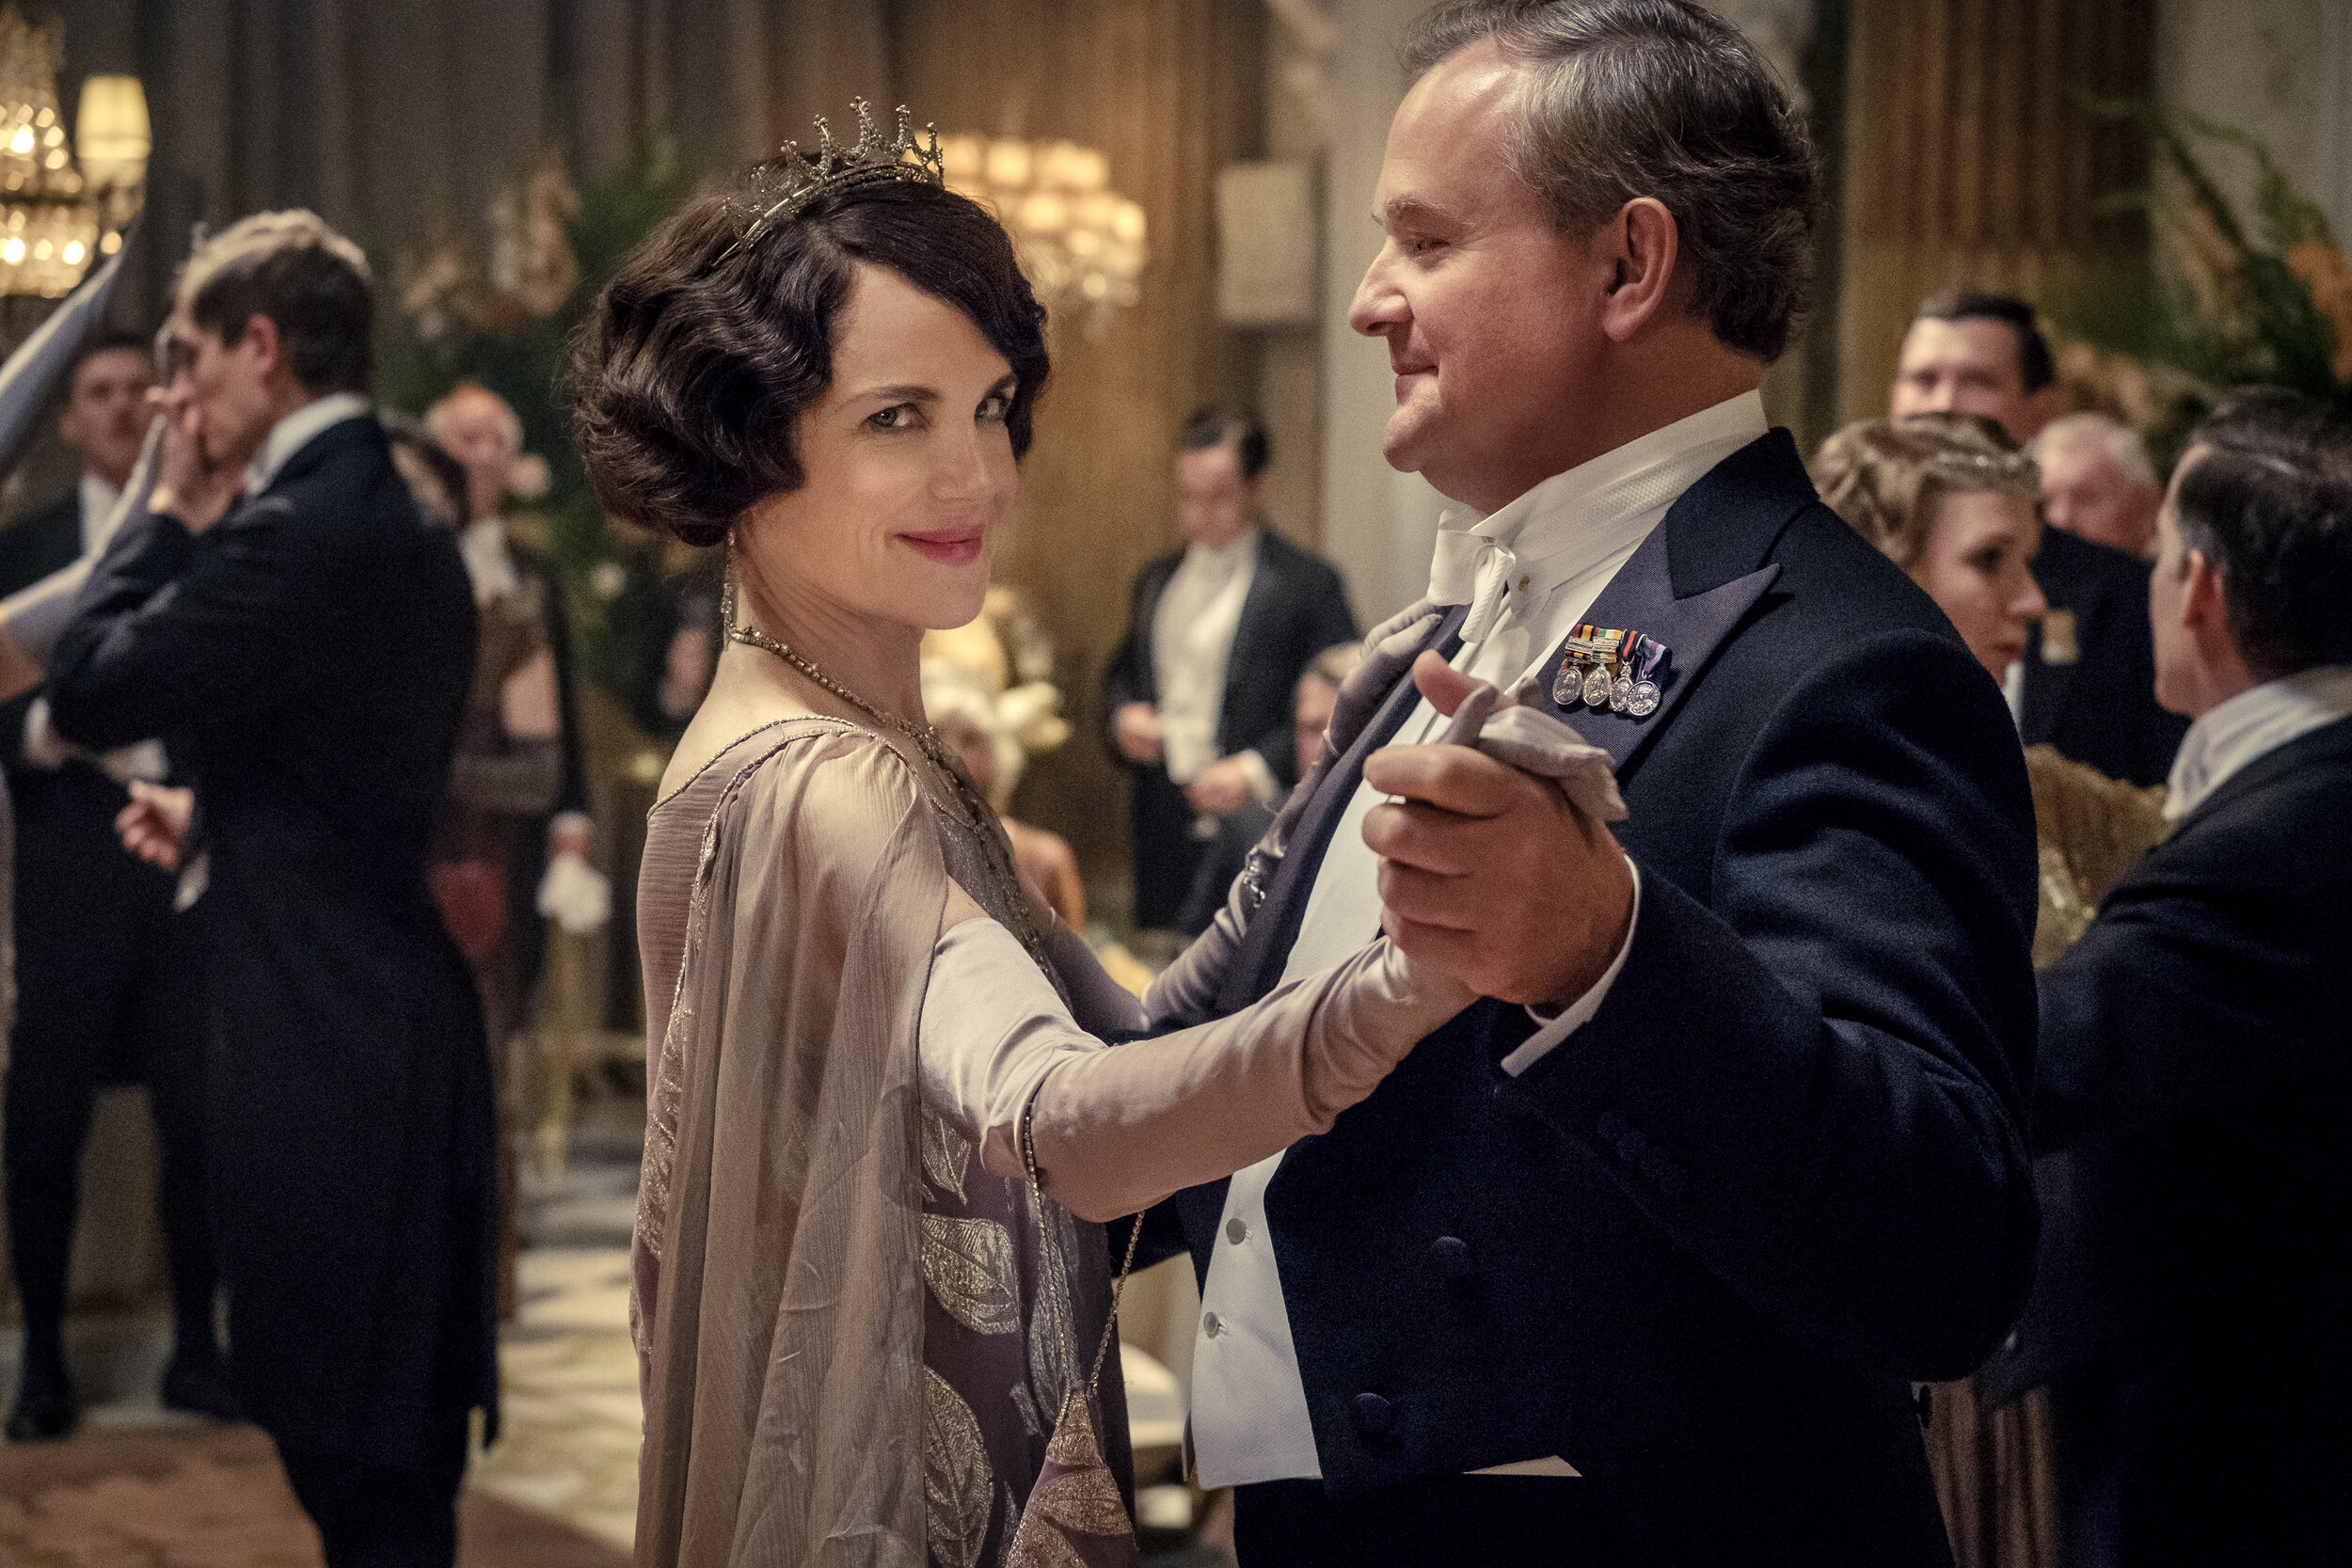 """Lady Grantham (Elizabeth McGovern, left) and Lord Grantham (Hugh Bonneville) dance at a royal ball, in a scene from """"Downton Abbey."""" (Photo by Jaap Buitendijk, courtesy of Focus Features.)"""